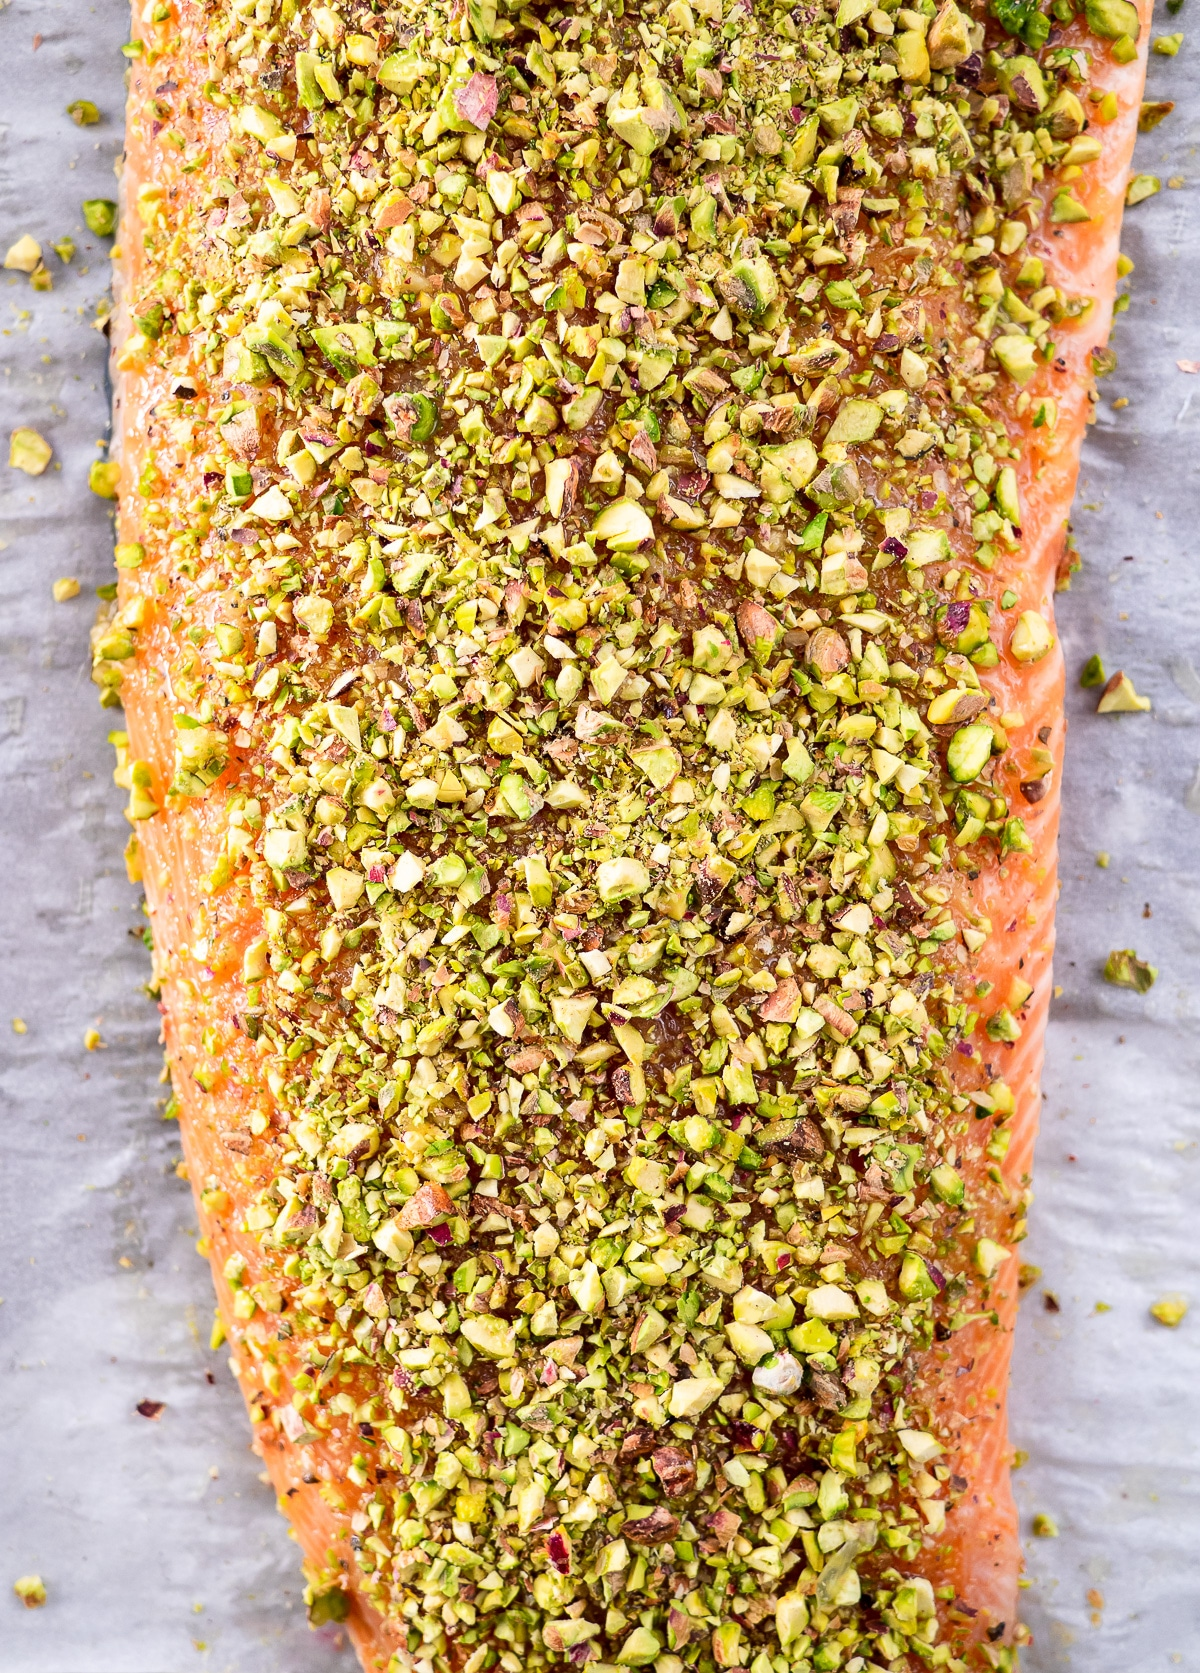 Raw filet of salmon crusted with chopped pistachios.